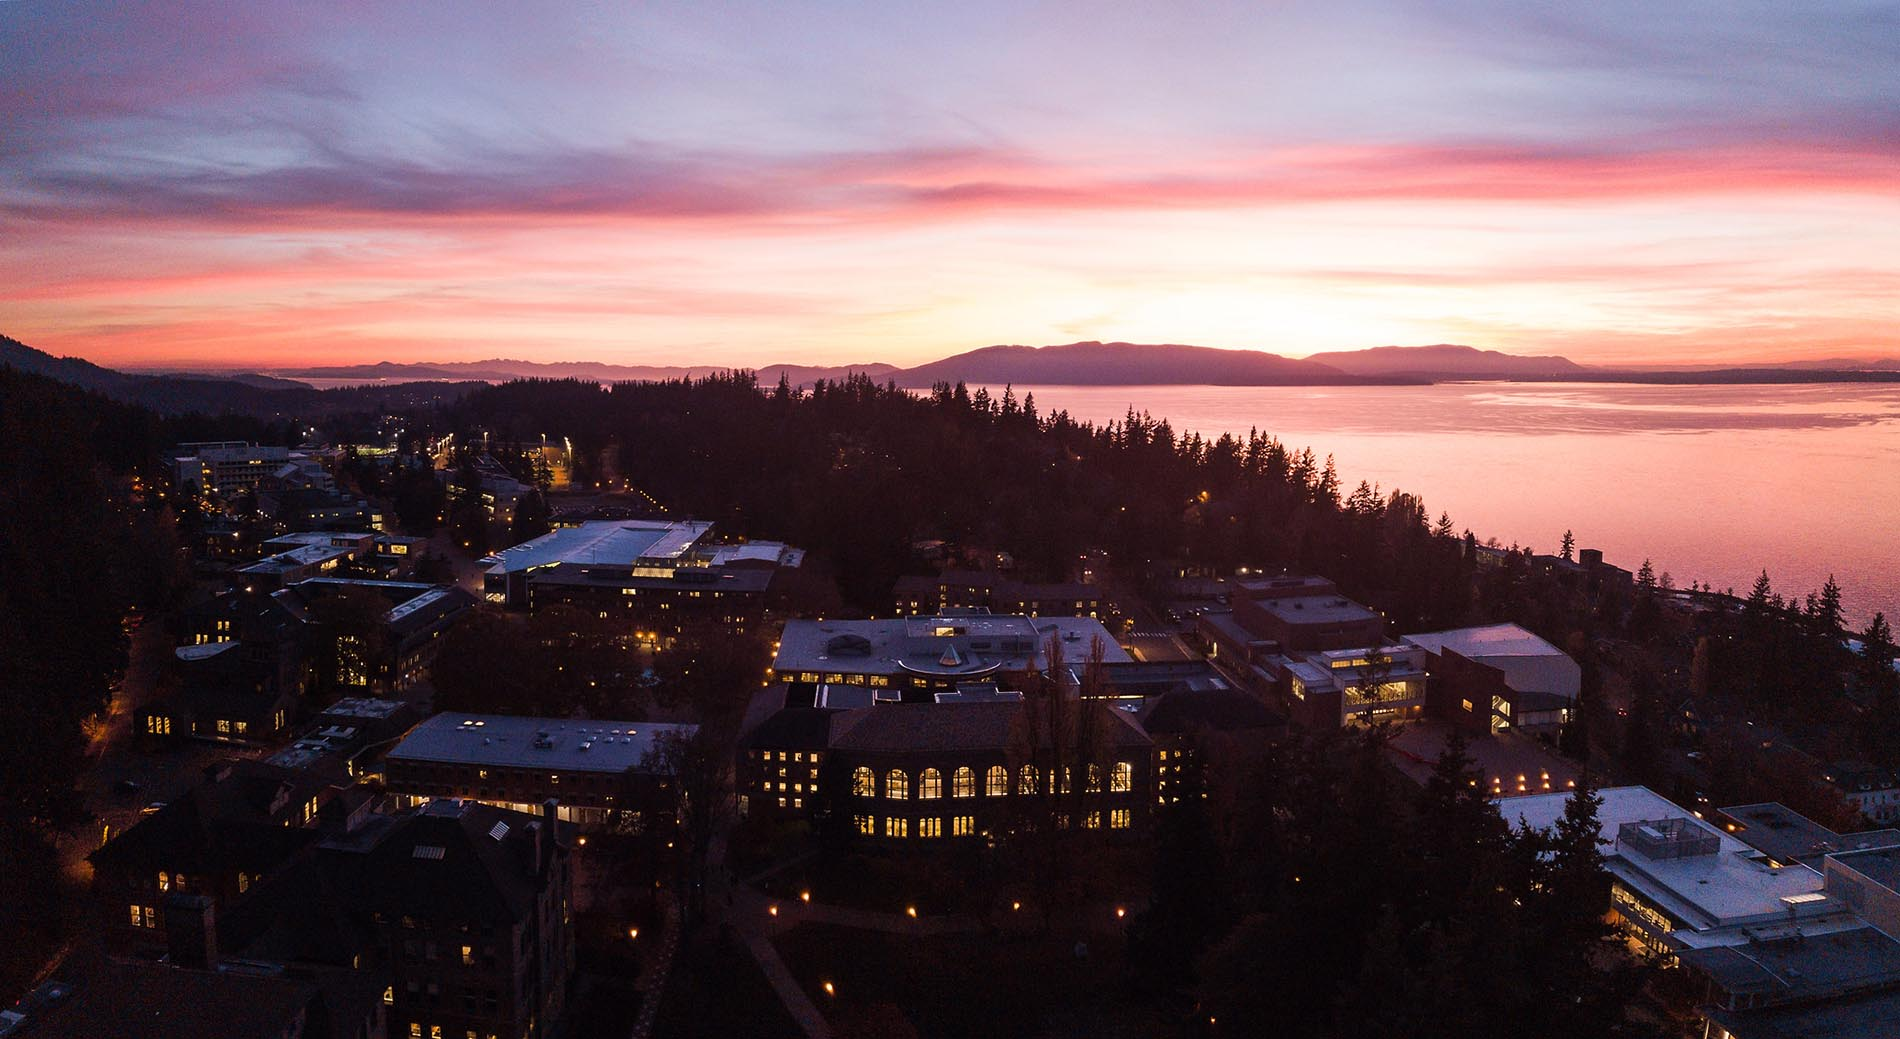 overhead view of Bellingham at sunset